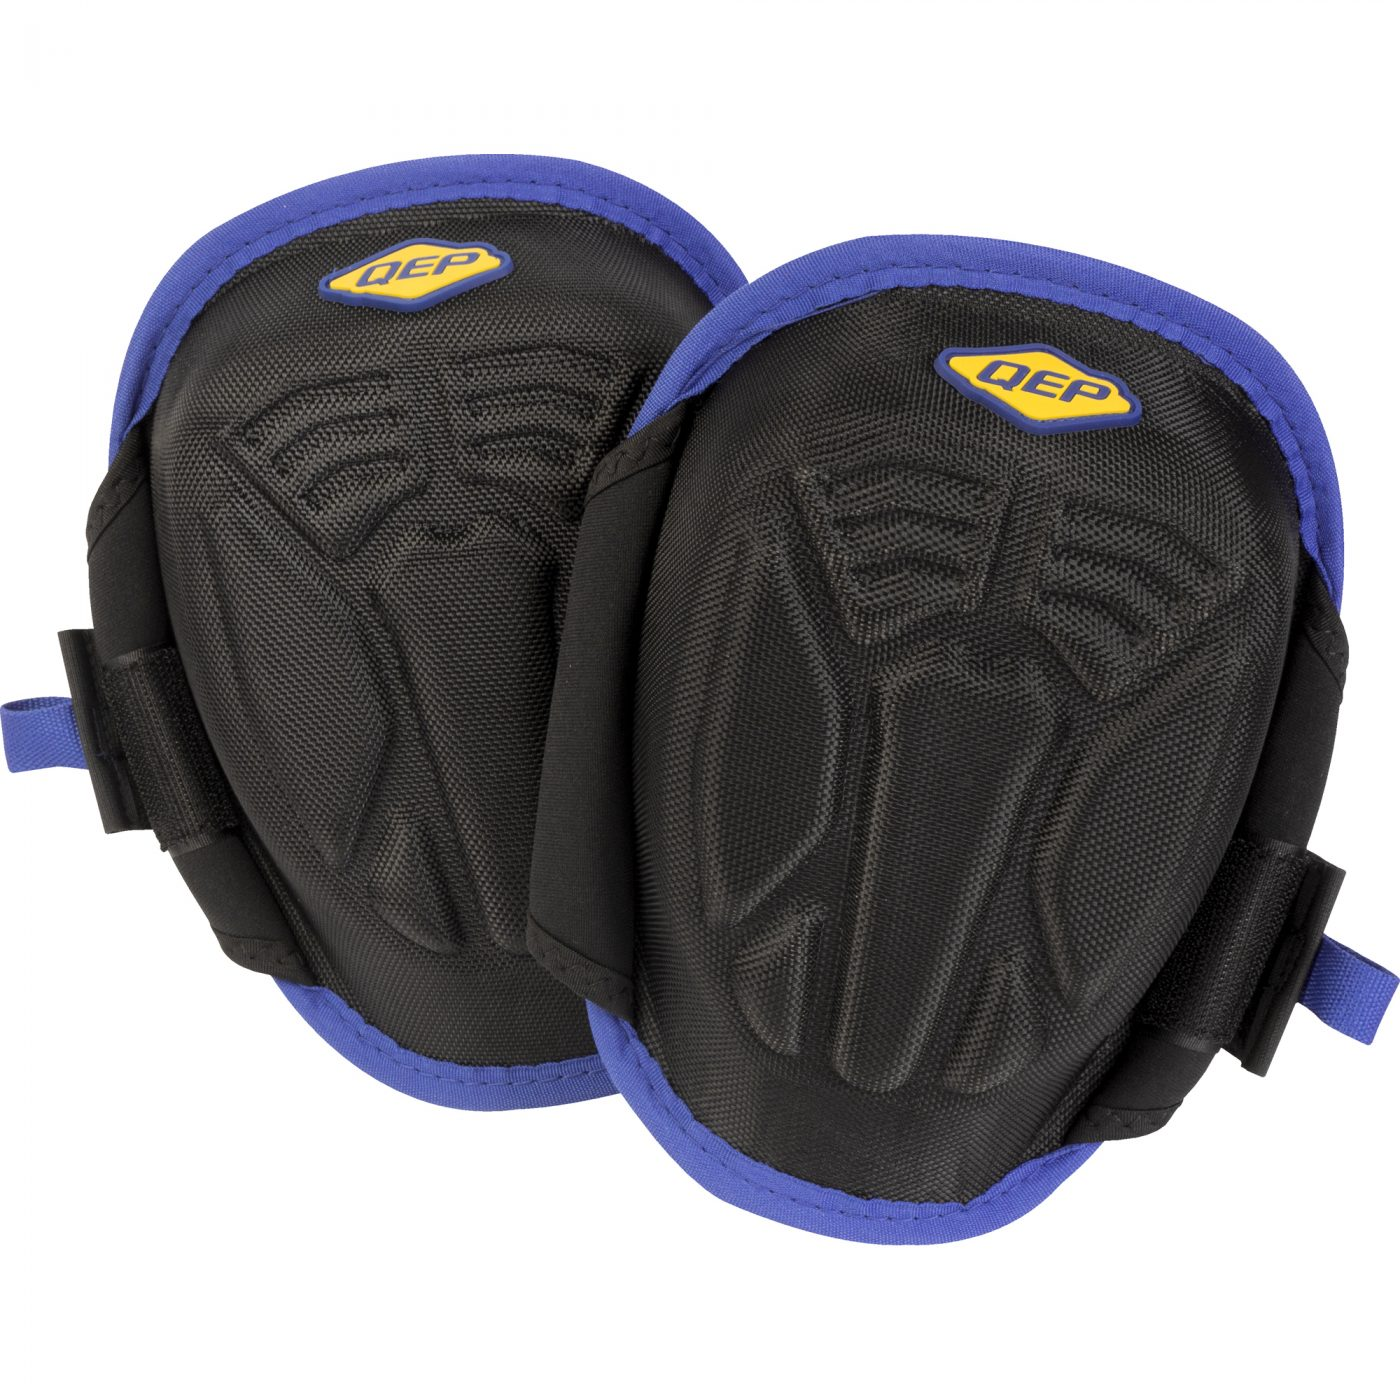 F3 Stabilizer Knee Pads